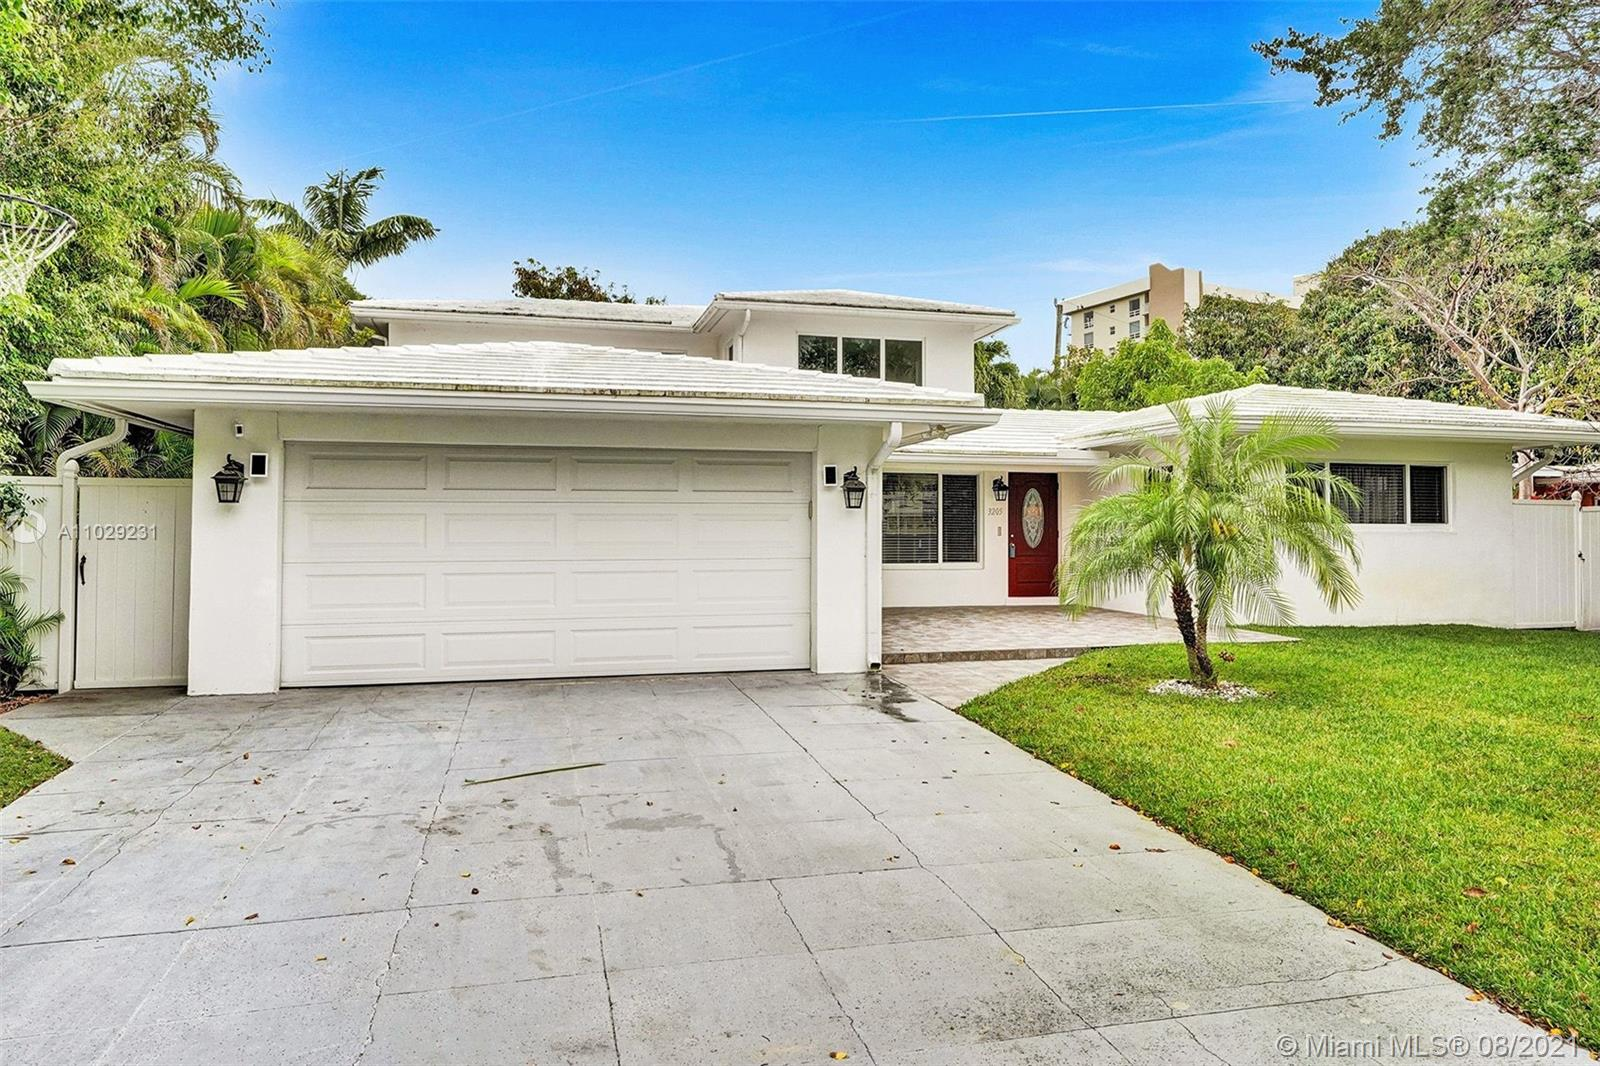 Killer Location Location Location! Gorgeous and spacious two story home with 4 beds and 4 bath in highly desirable East Pompano Beach. Updated electrical system, code compliant hurricane impact windows and doors, cathedral ceilings, second floor master suite with spacious loft area, walk in closets, 2 car garage with extra long driveway, separate laundry room and work bench for all your projects, tons of storage and over 3000 sq ft. under air with a bright, open feel that's perfect for entertaining!! Just steps away from your own gated private beach access, Pompano's Intracoastal waterway, Amphitheater, Hillsborough inlet marinas, lighthouse, golf courses, and restaurants and so much, much, more. Don't walk, RUN to this hidden gem before it's too late!!!!